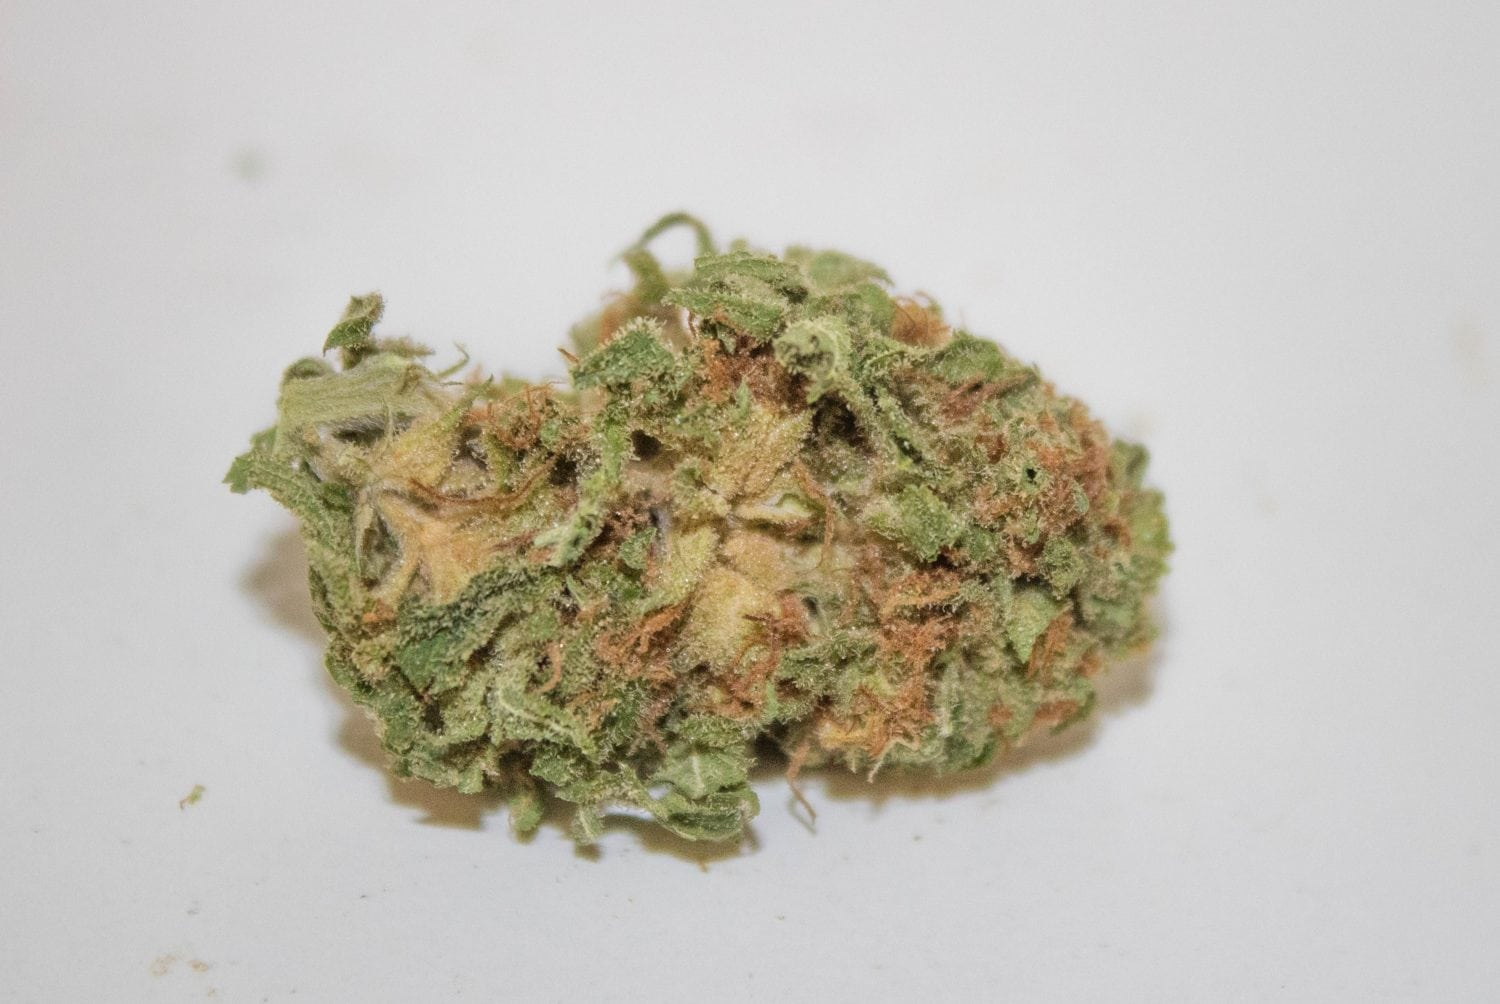 Read Our Official Review Of The Alien Orange Cookies Strain